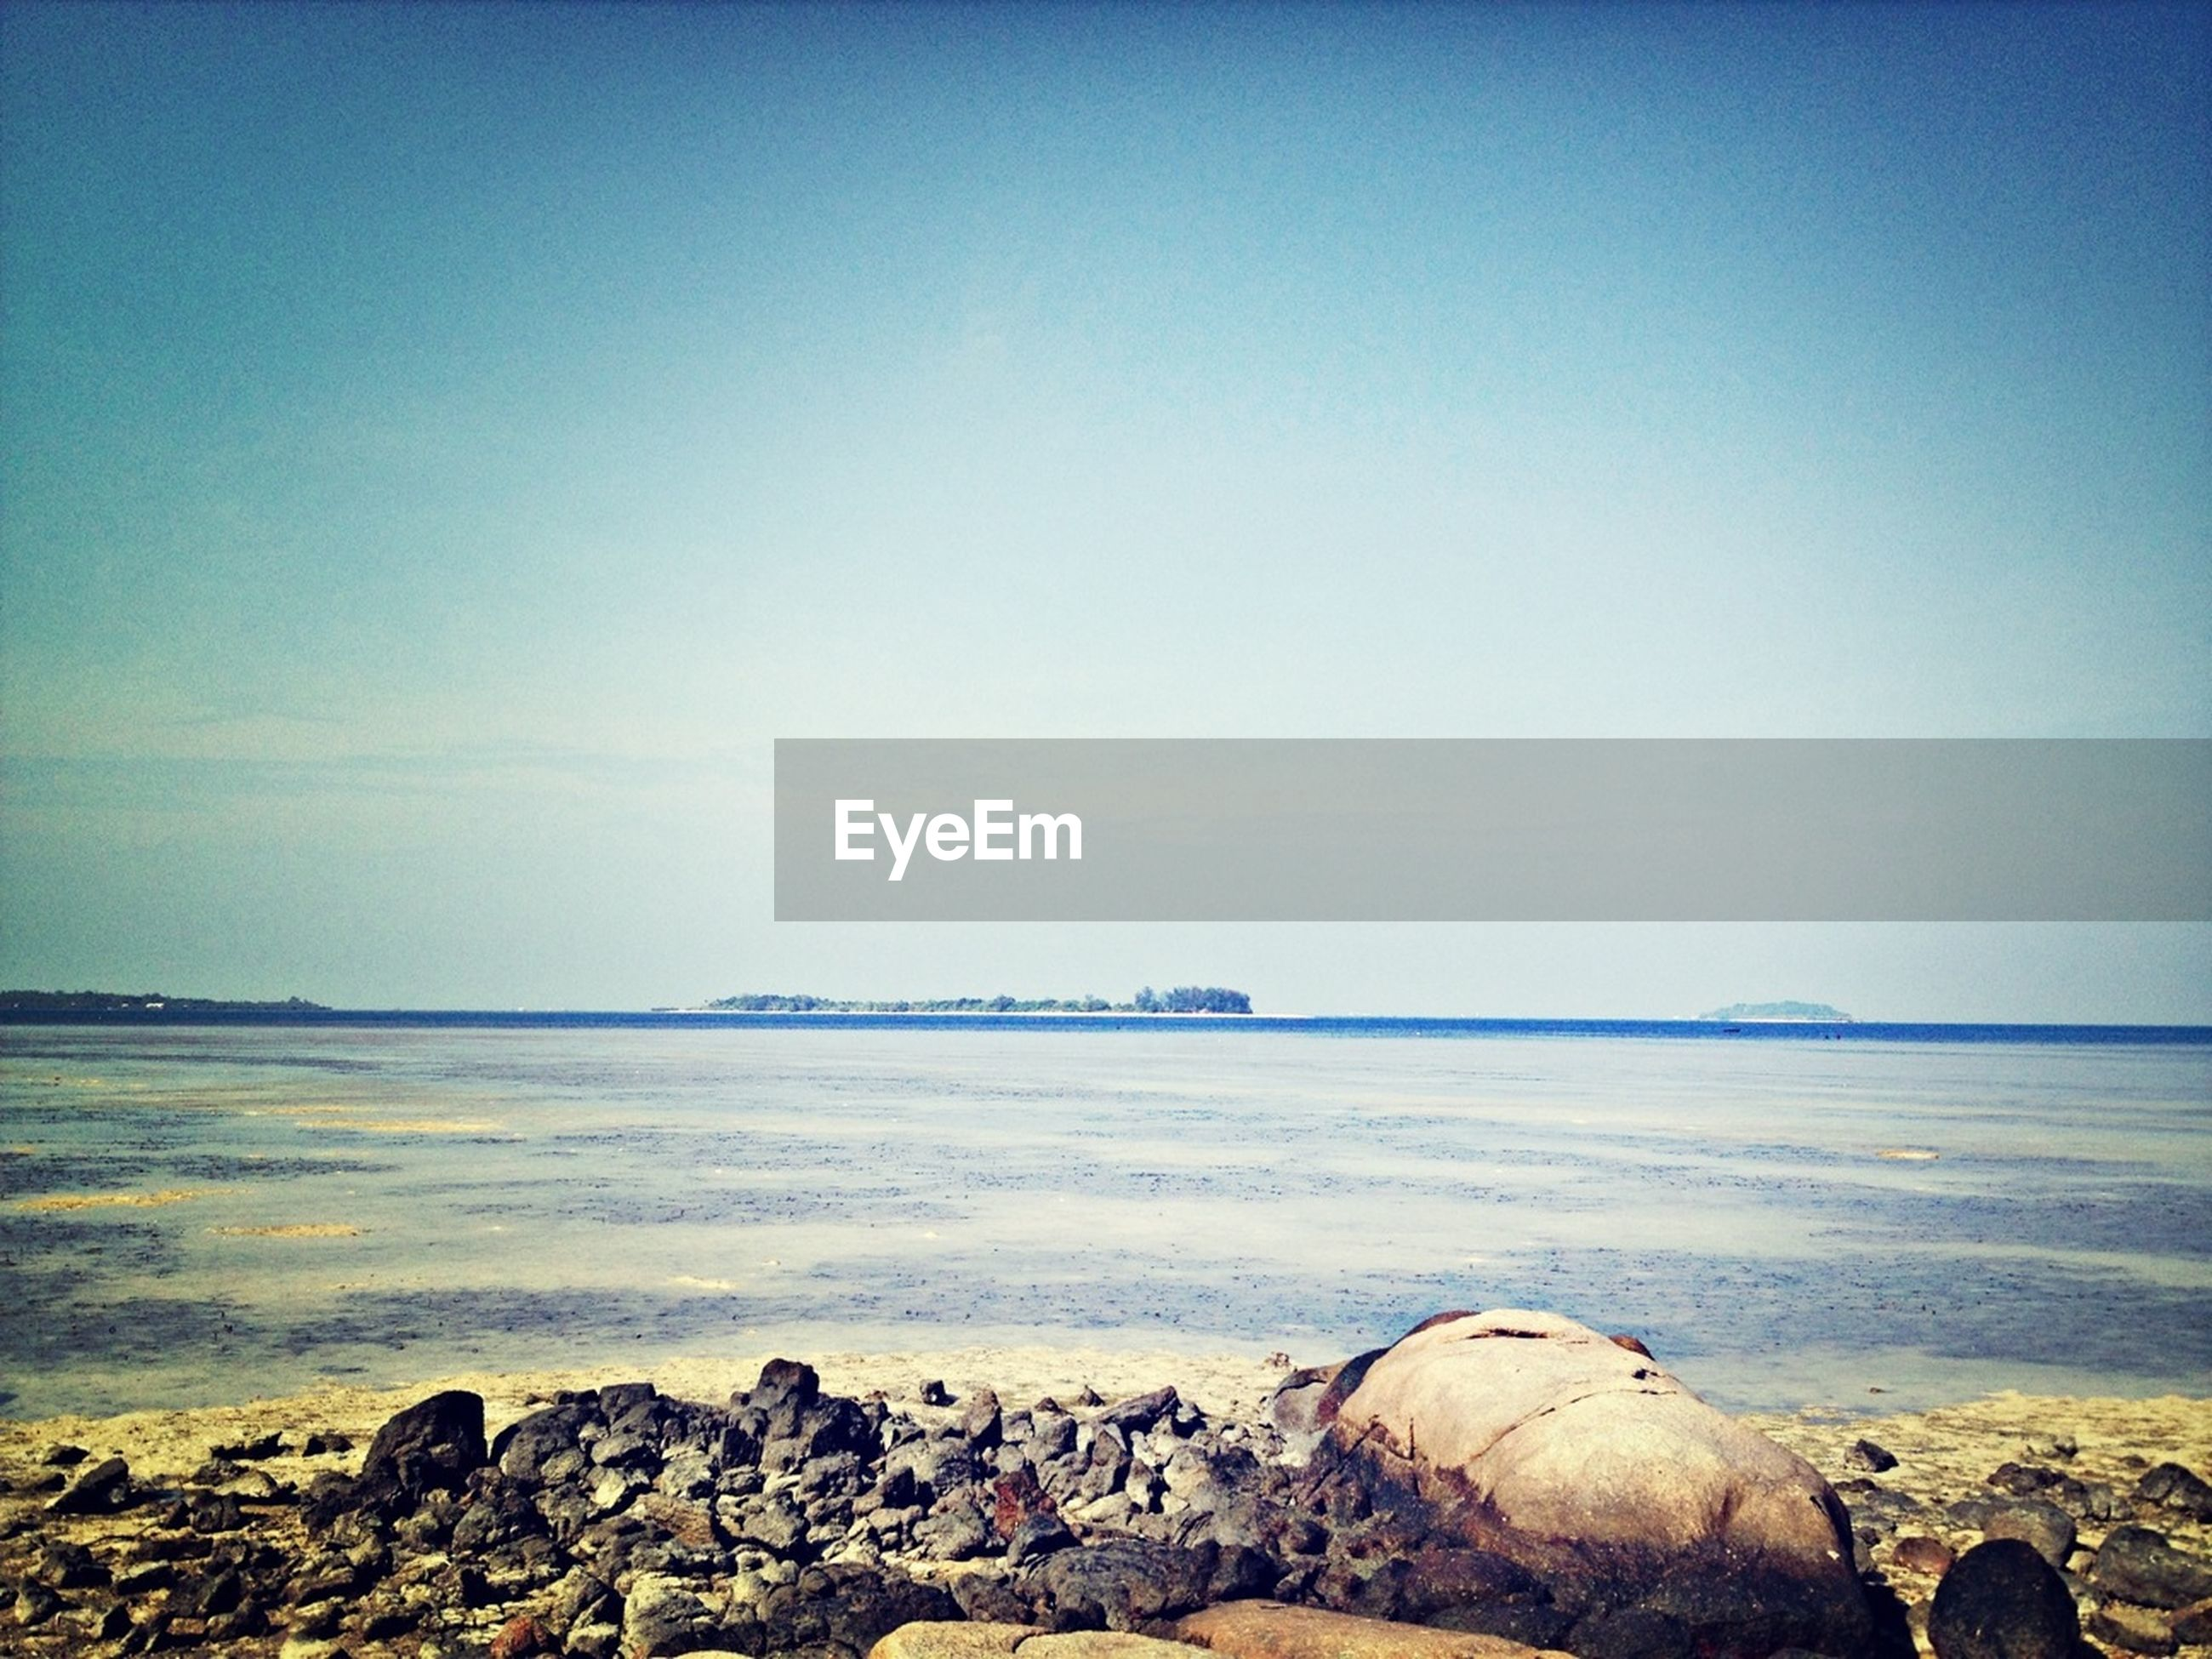 sea, water, rock - object, horizon over water, tranquil scene, beach, shore, scenics, tranquility, beauty in nature, clear sky, nature, rock, copy space, stone - object, rock formation, sky, idyllic, blue, pebble